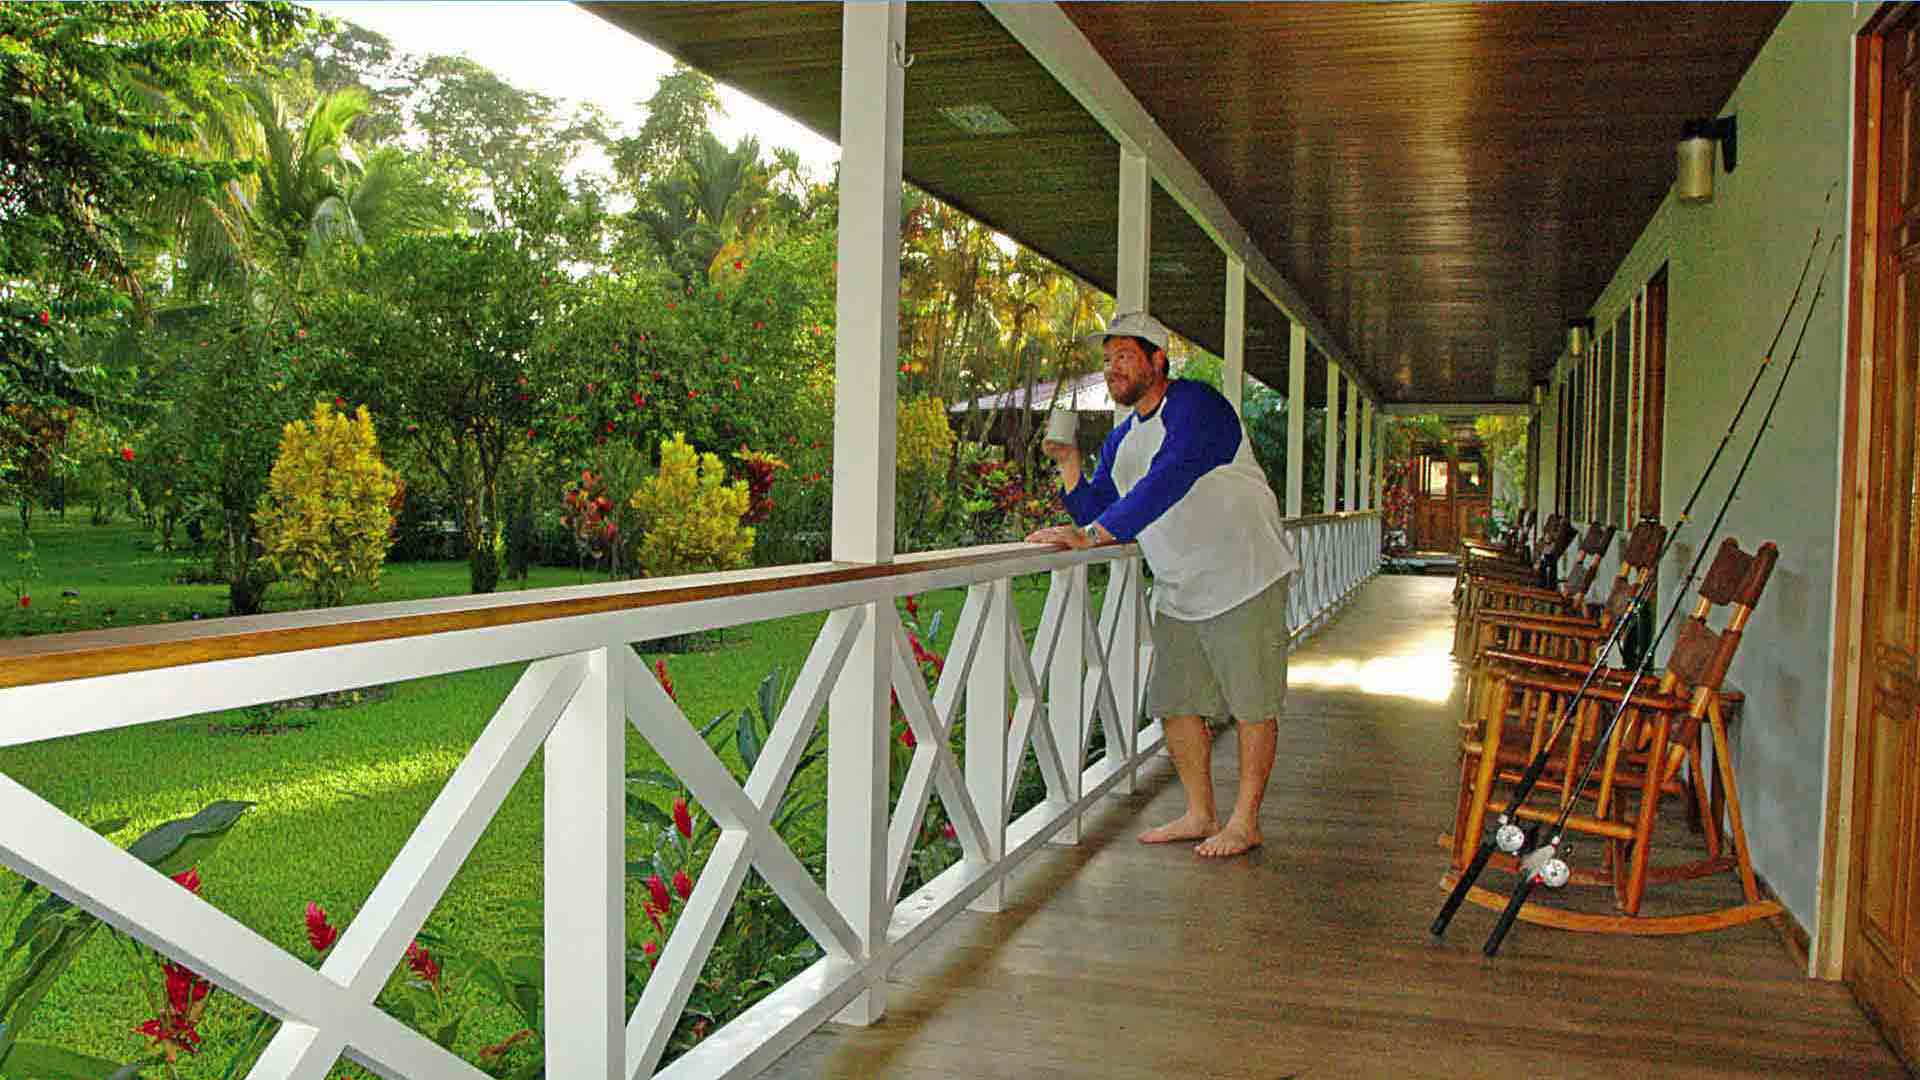 Angler with Cup of Coffee on the Porch Overlooking Flowers